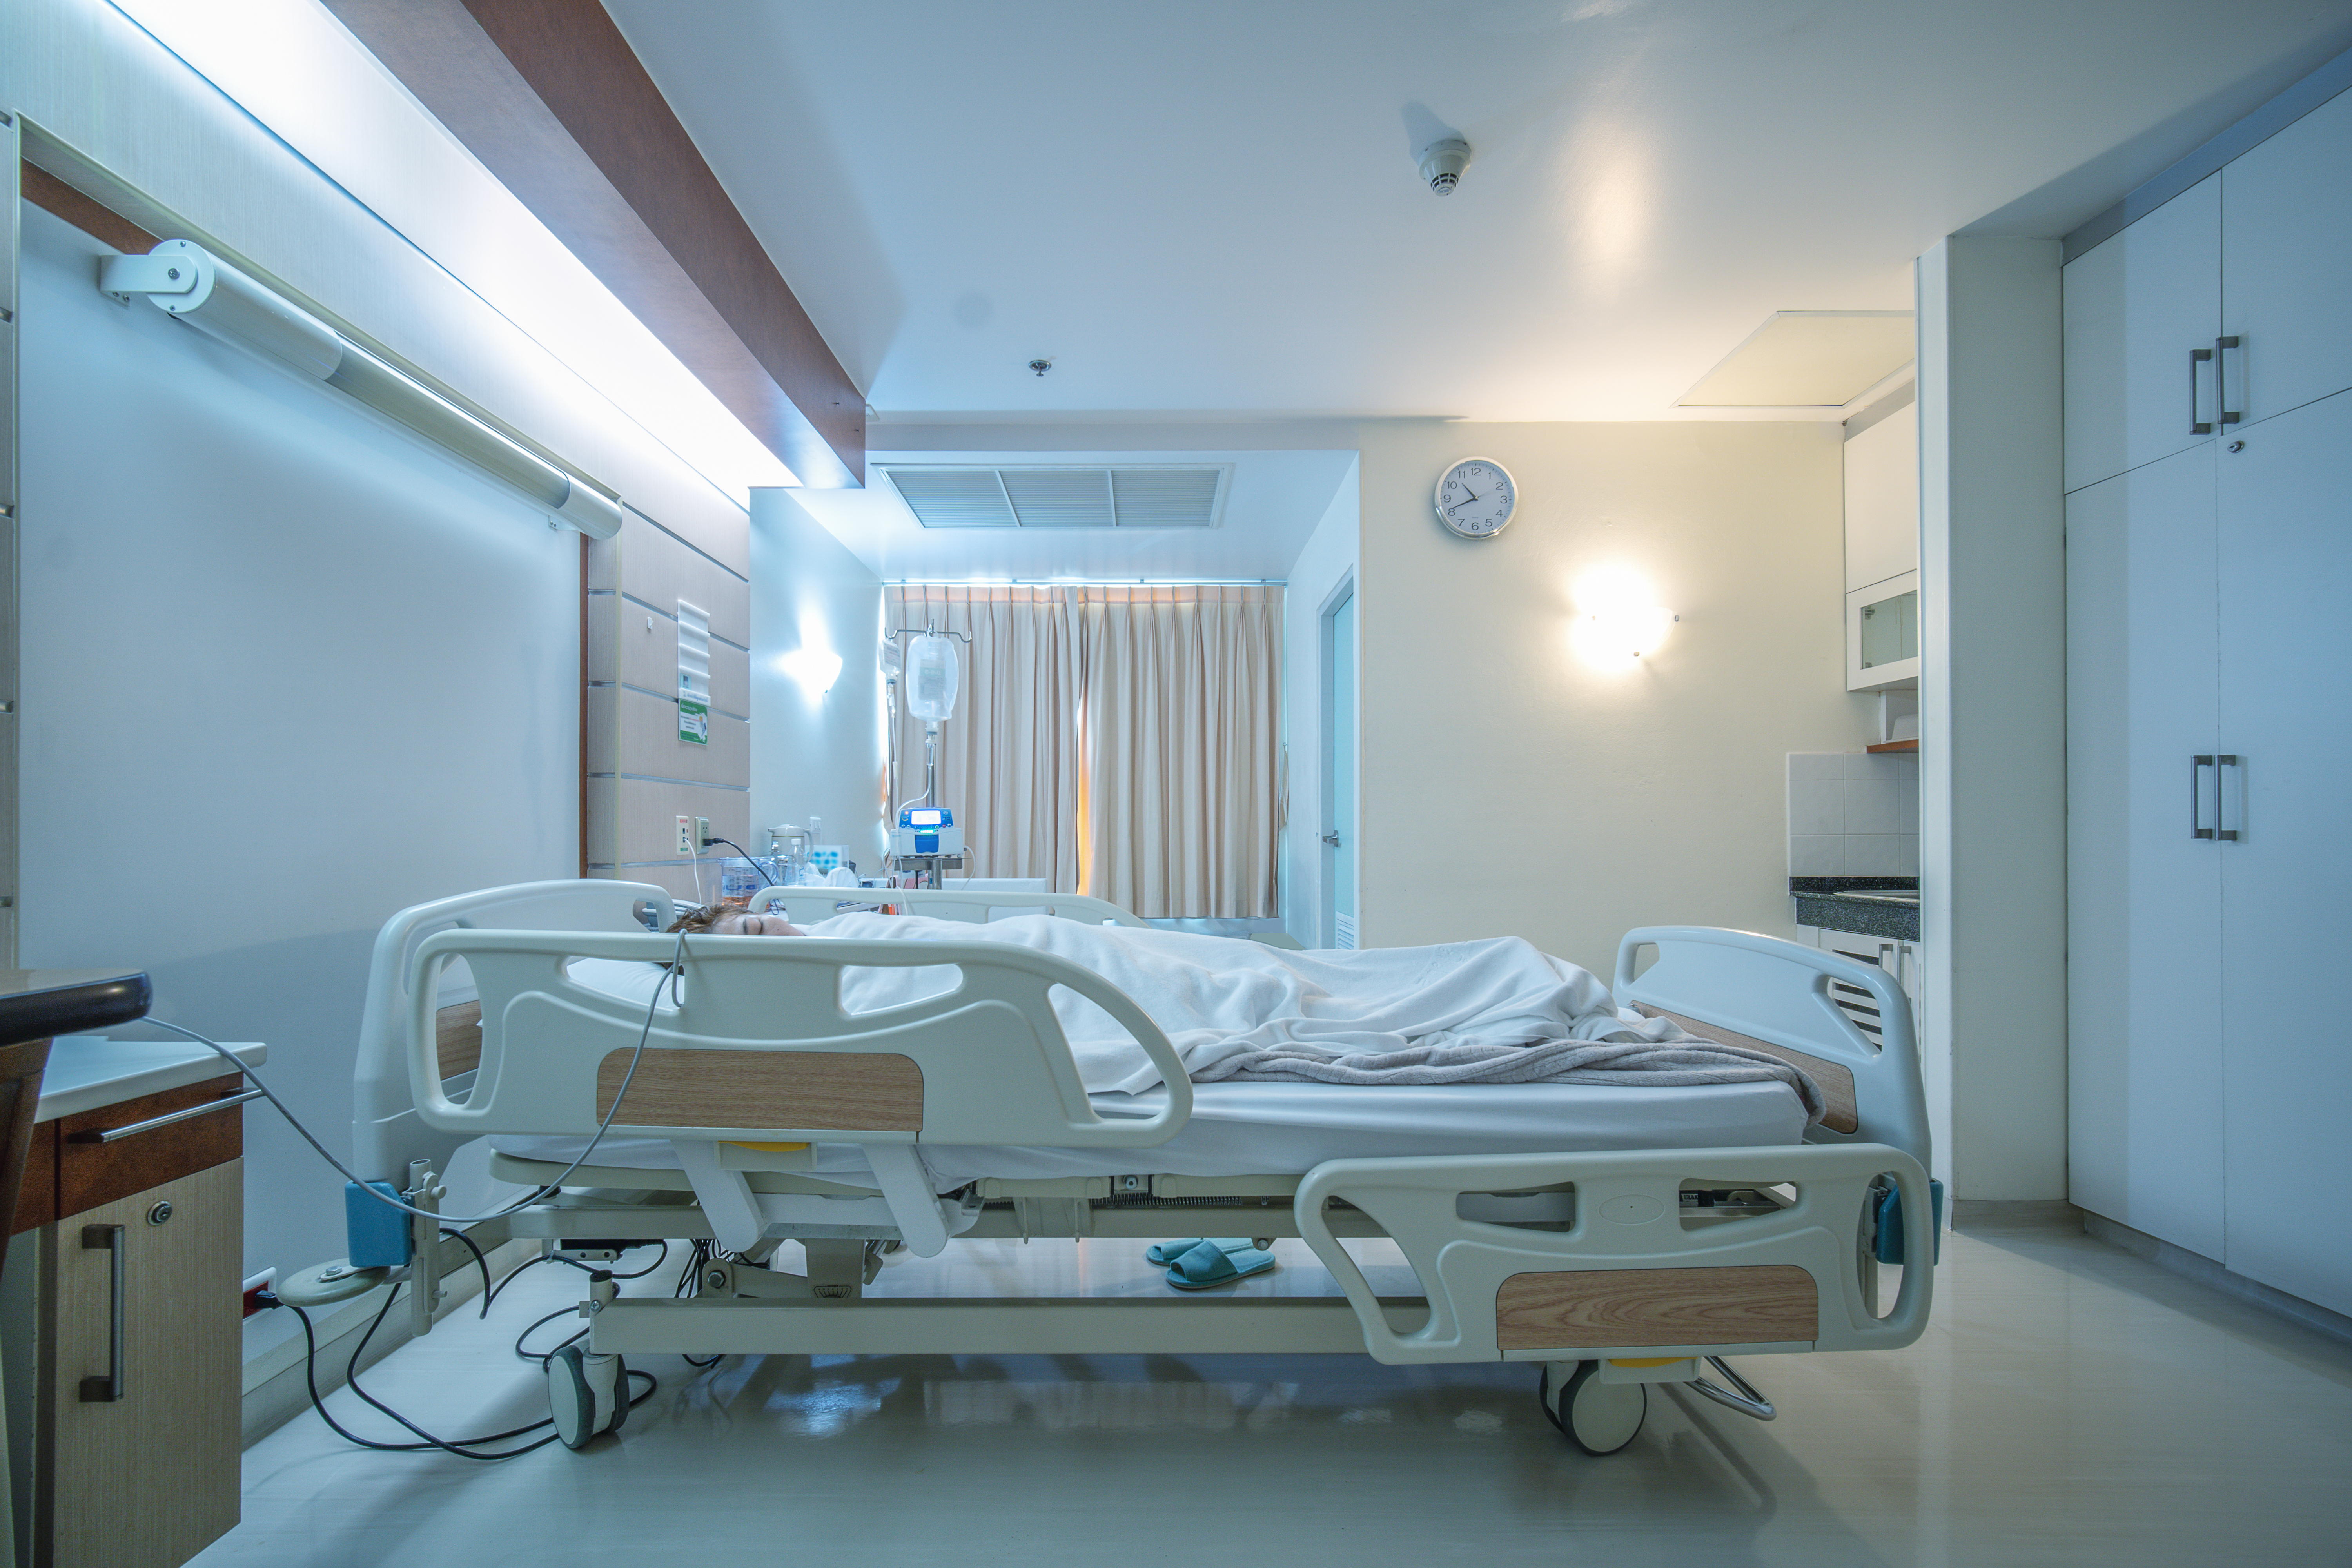 My Severe Covid 19 It Felt Like Dying In Solitary Confinement Stat